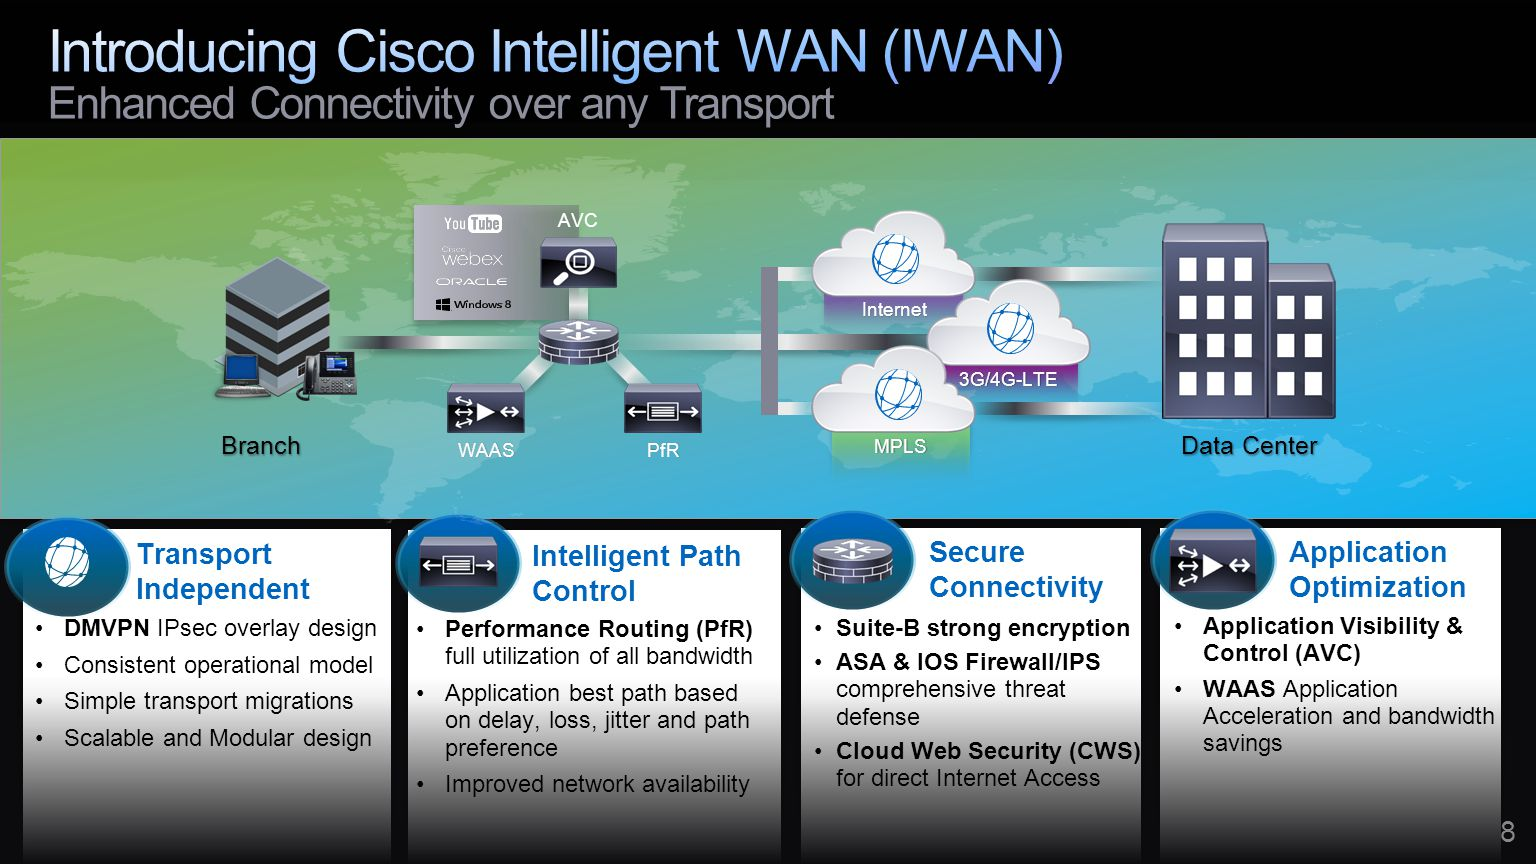 Introducing Cisco Intelligent WAN (IWAN) Enhanced Connectivity over any Transport